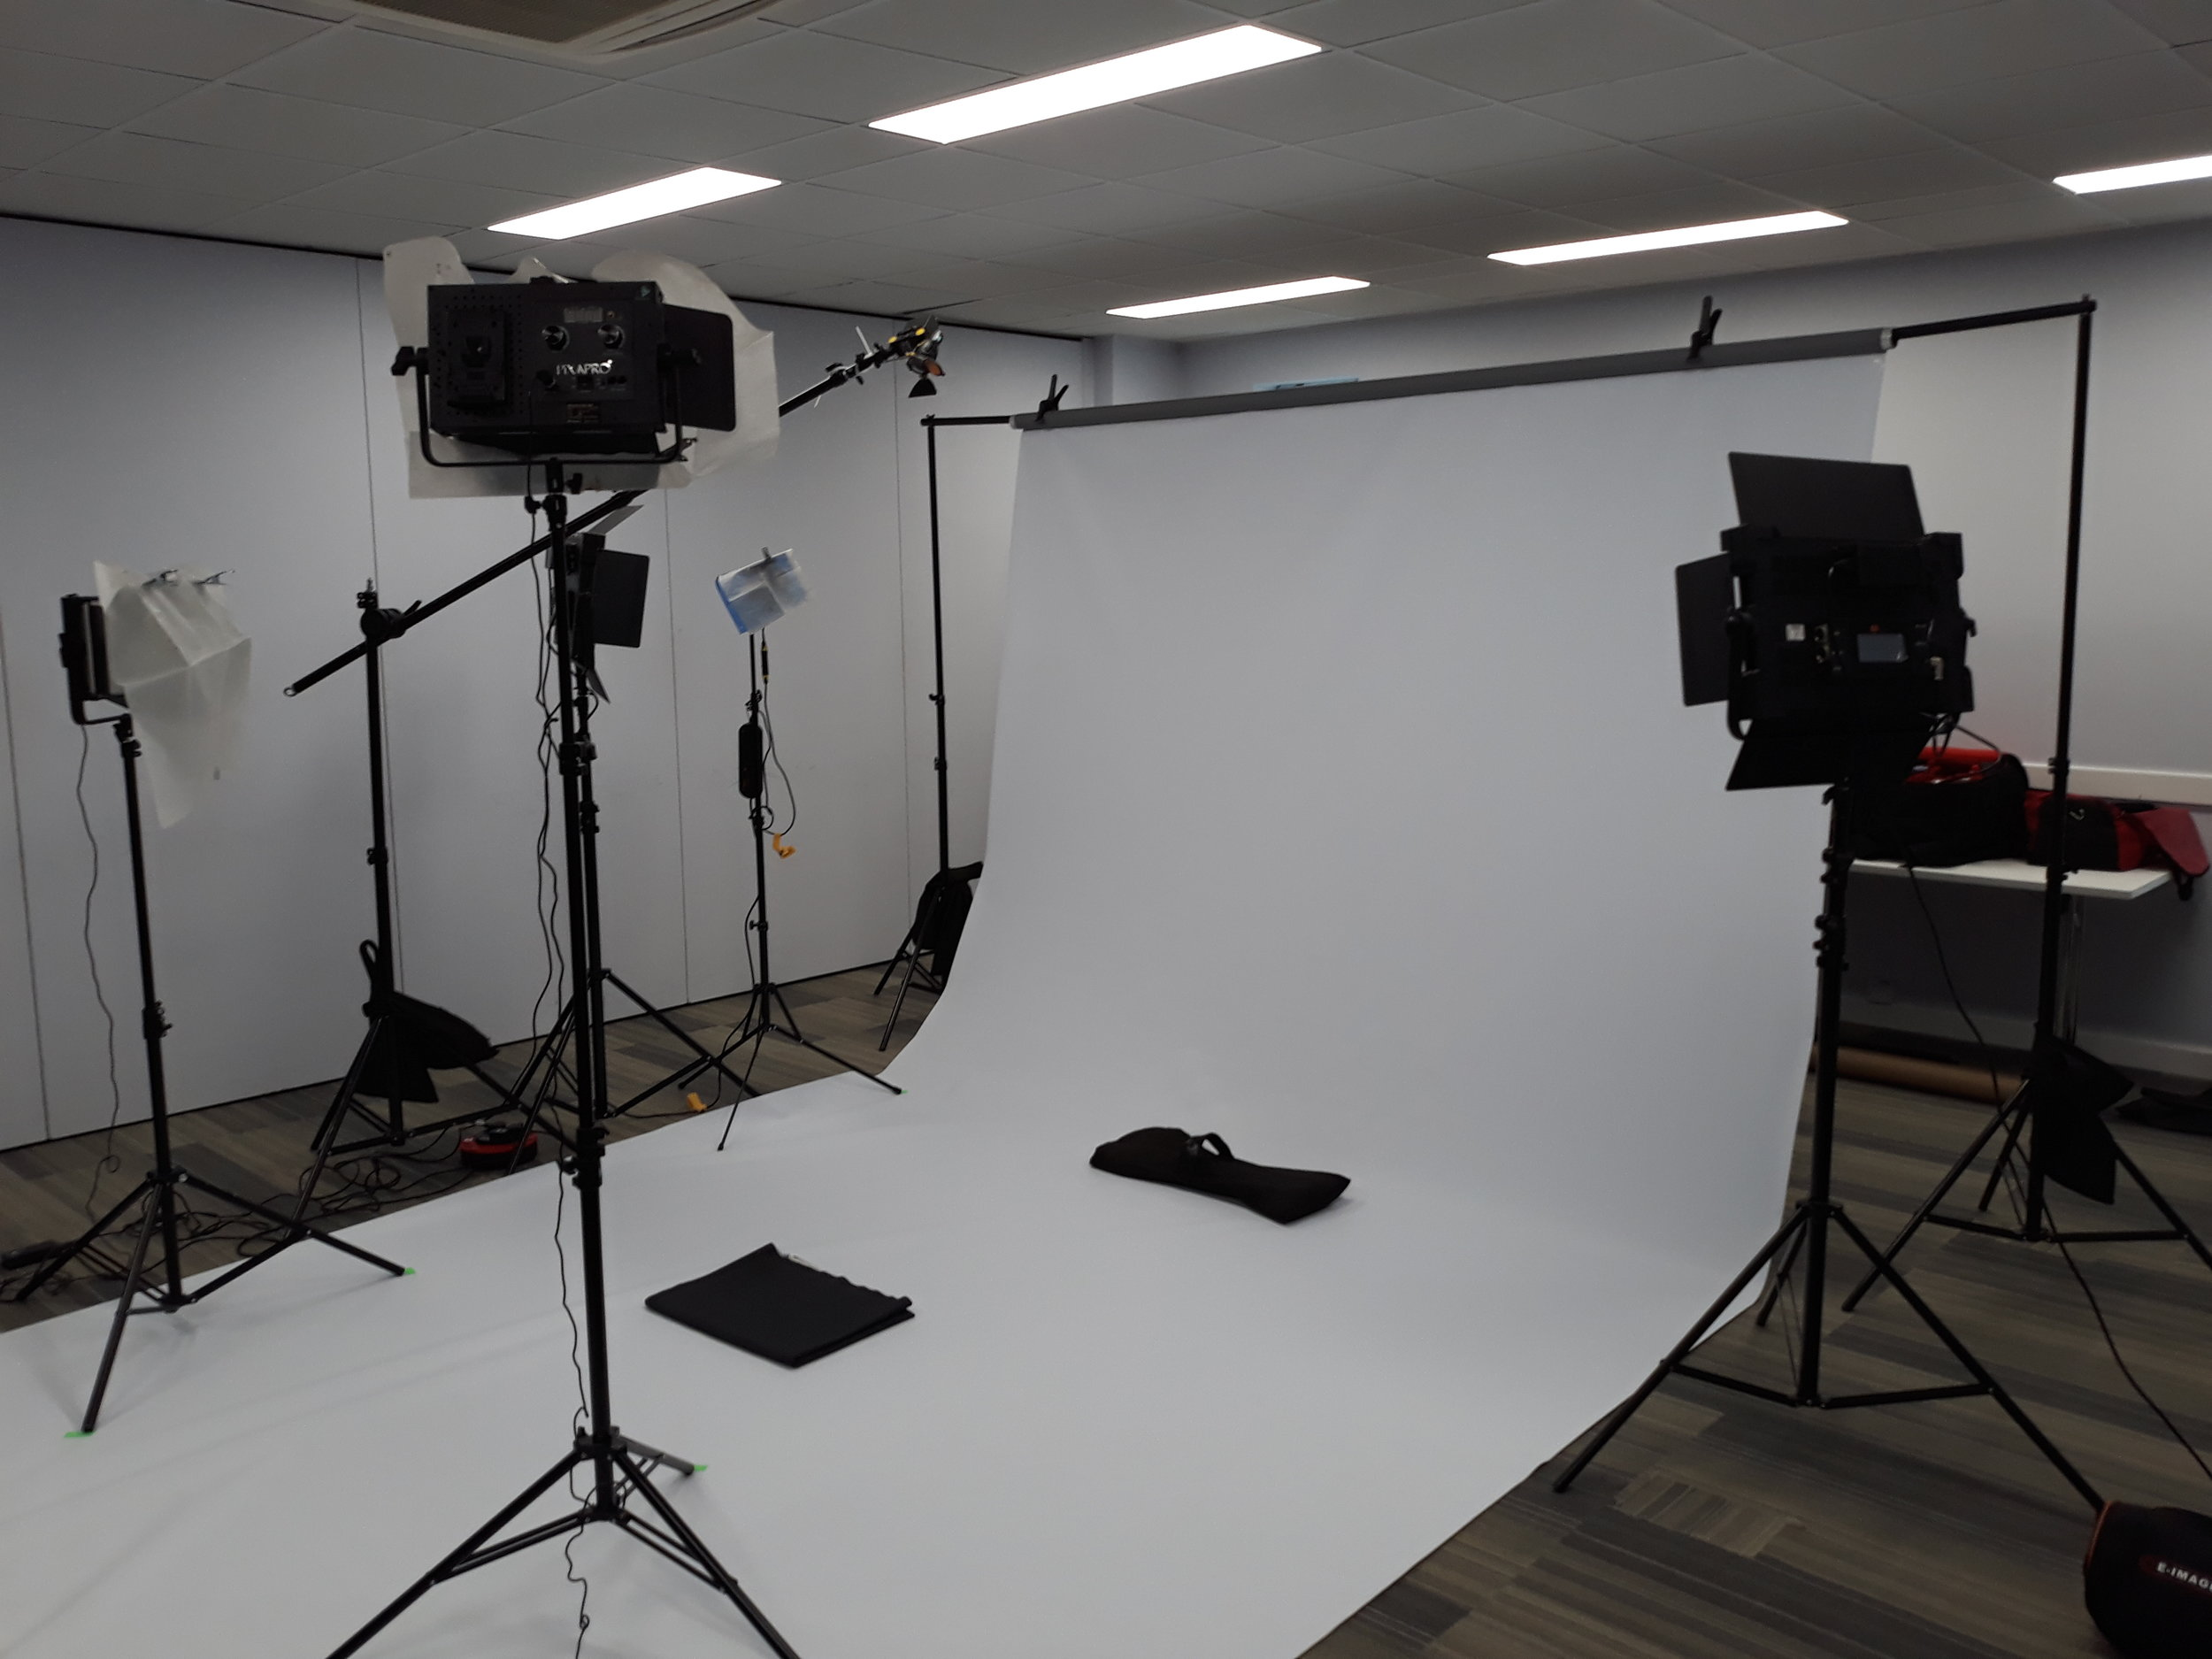 Our setup in an empty office. Good thing we had lots of space here because we needed it!